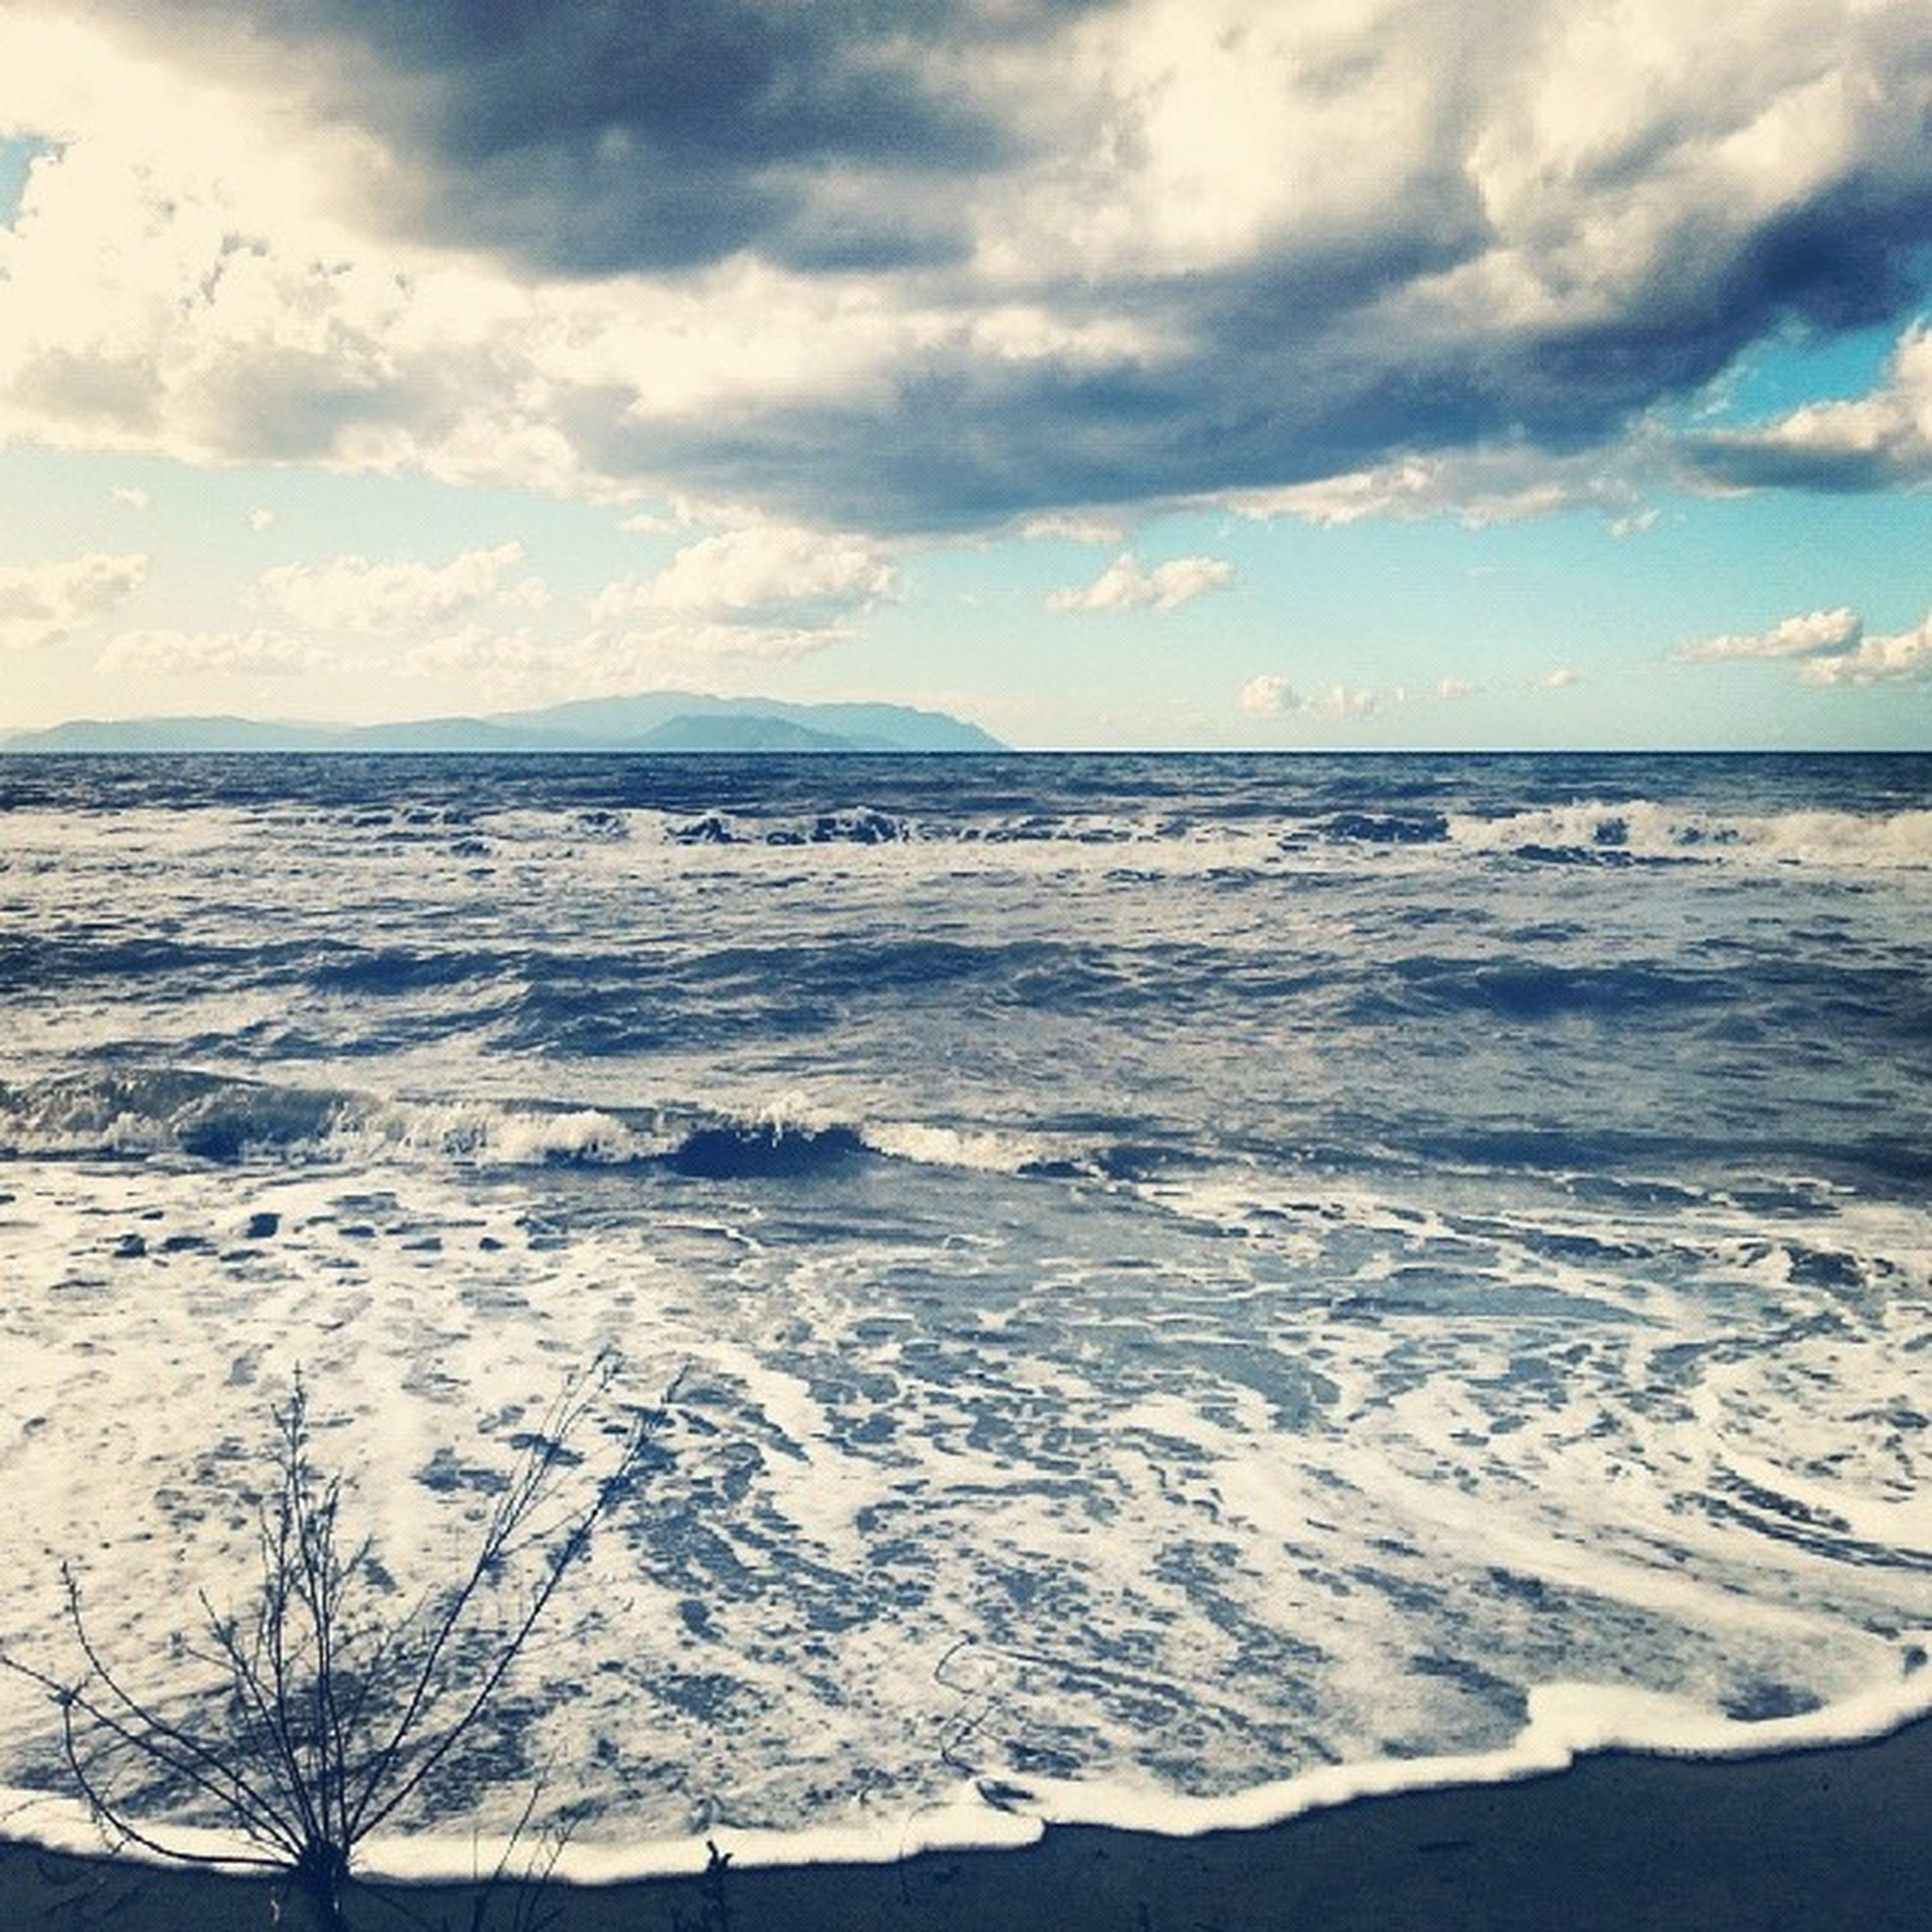 sky, tranquil scene, scenics, tranquility, beauty in nature, cold temperature, snow, water, sea, winter, cloud - sky, nature, weather, cloudy, cloud, idyllic, season, beach, horizon over water, non-urban scene